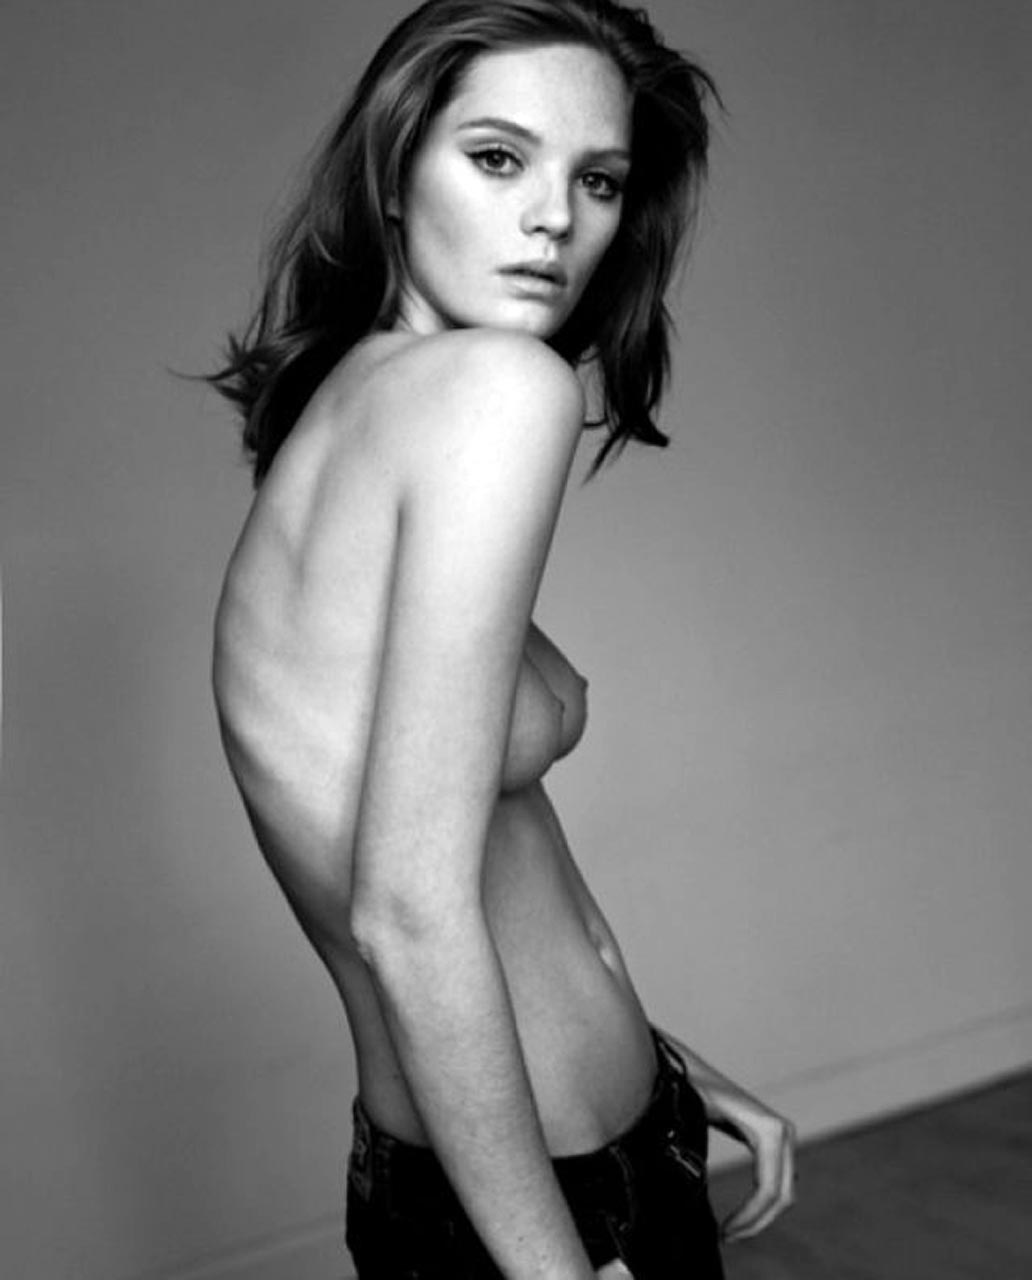 Pussy Alexina Graham nudes (77 foto and video), Topless, Hot, Instagram, cameltoe 2018